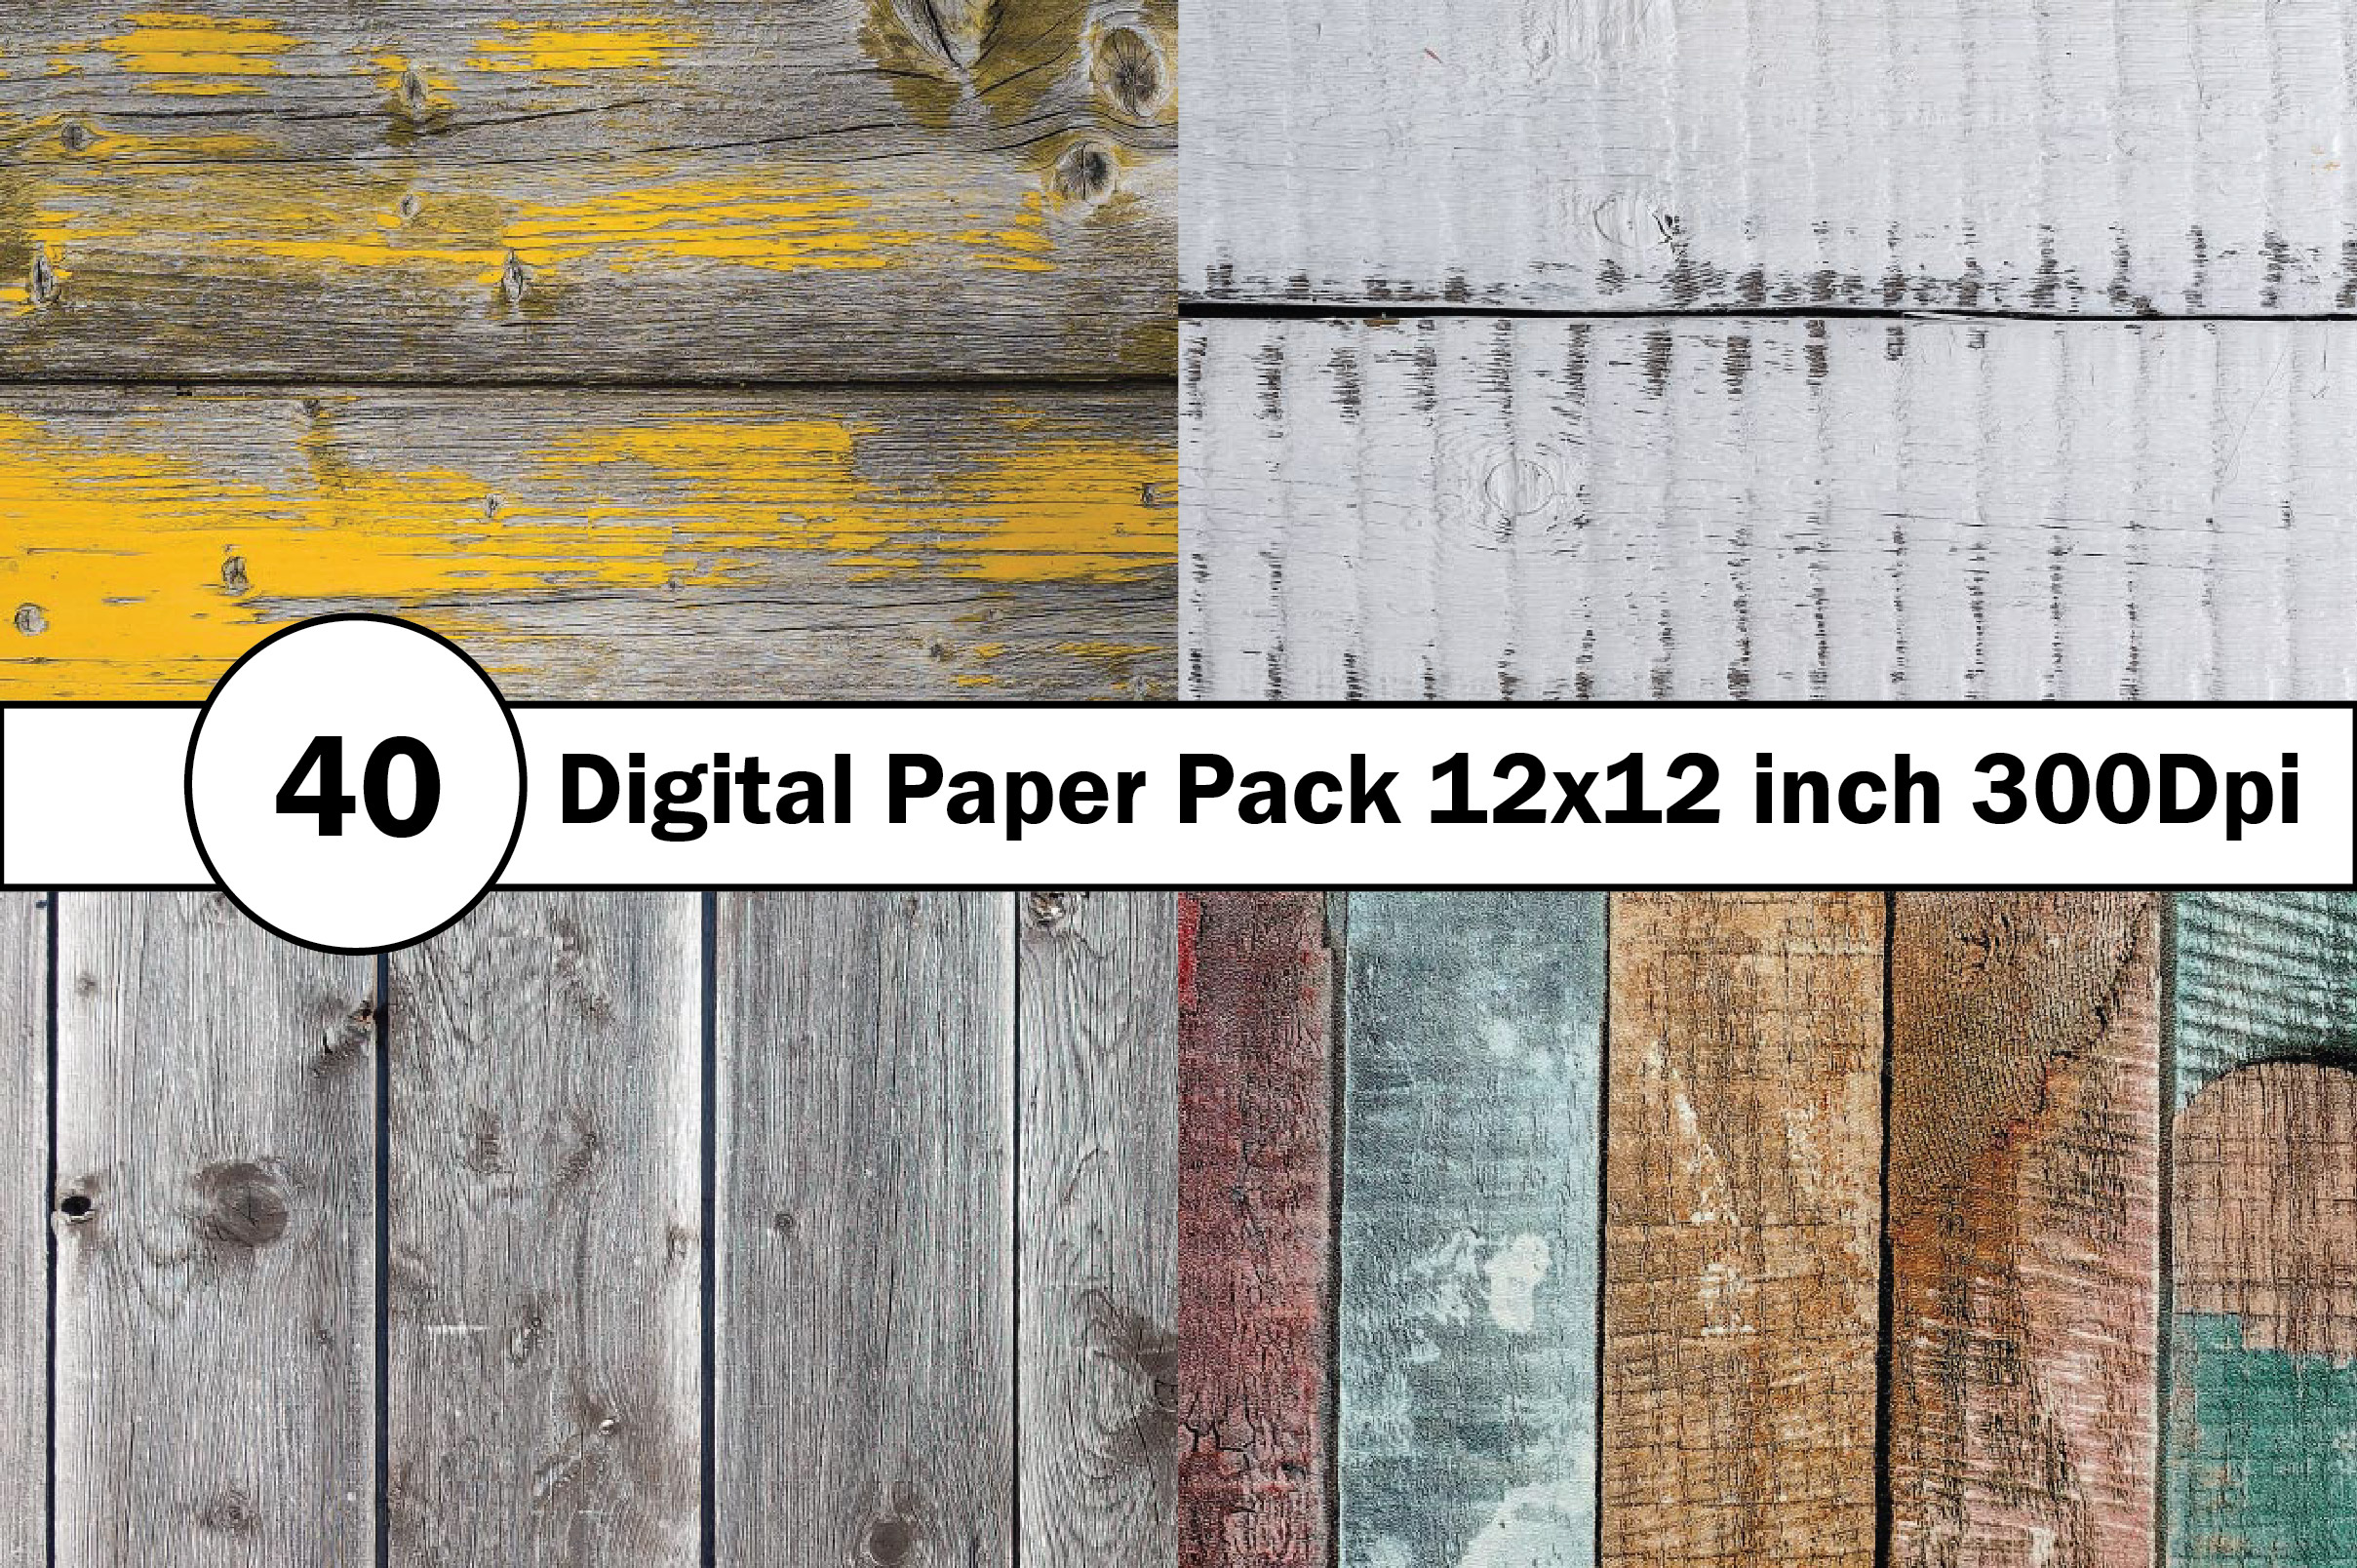 40 Digital Paper Pack 12x12 inch 300 Dpi example image 8